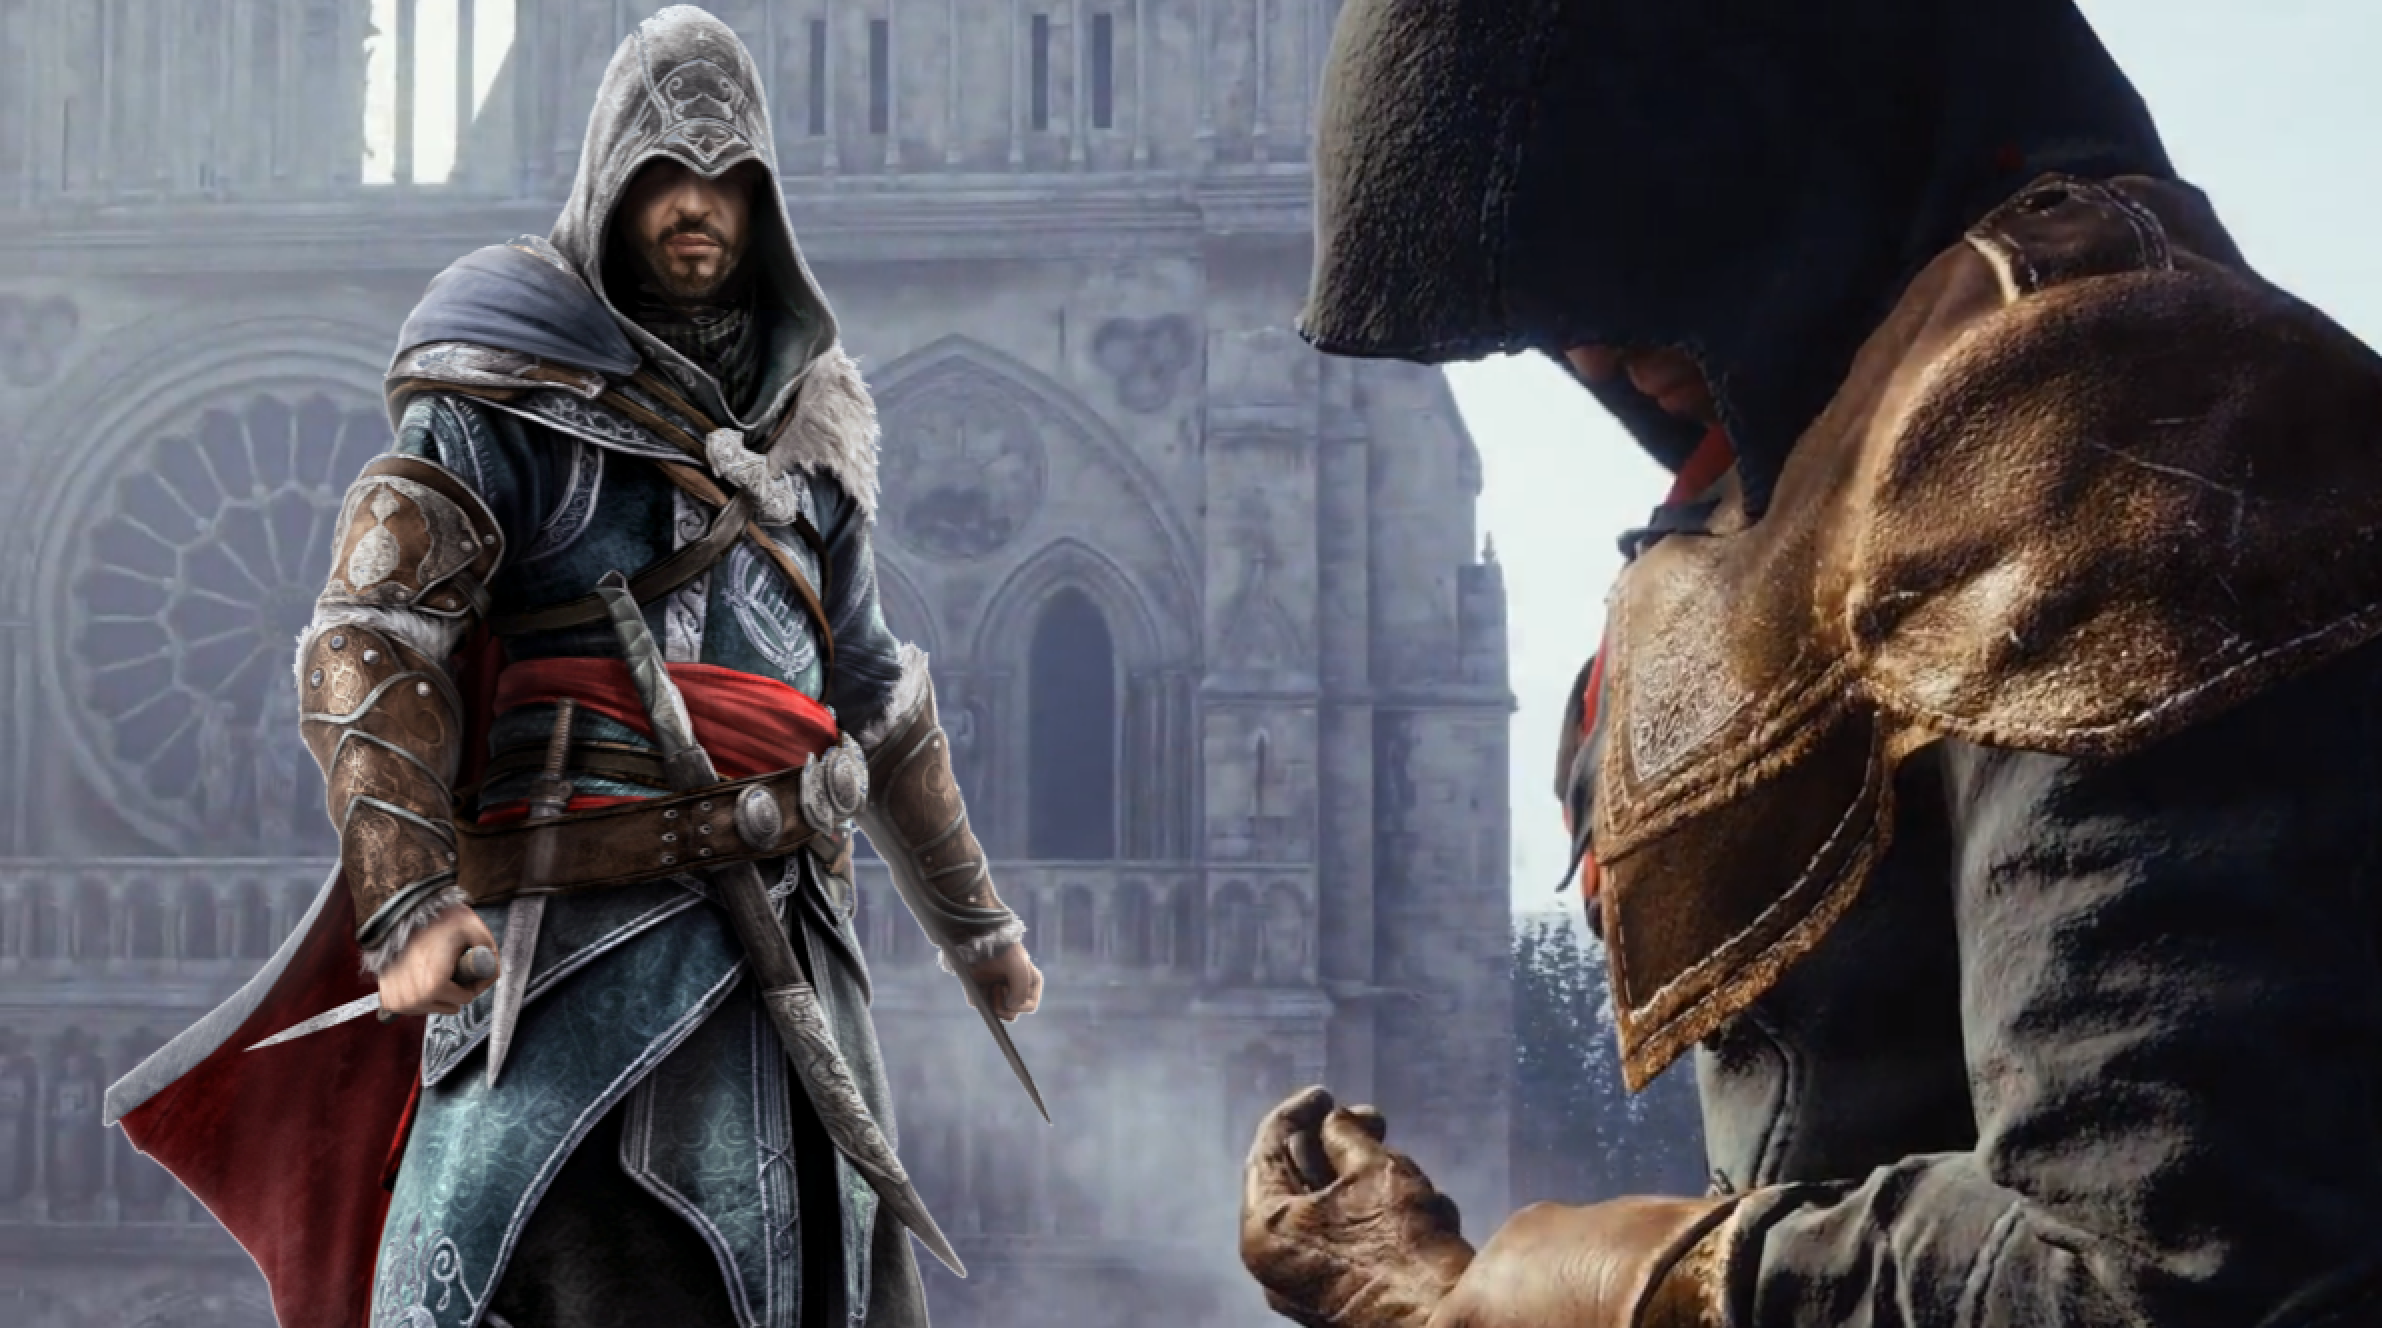 Assassins Creed Unity Teaser Uses Familiar Imagery The